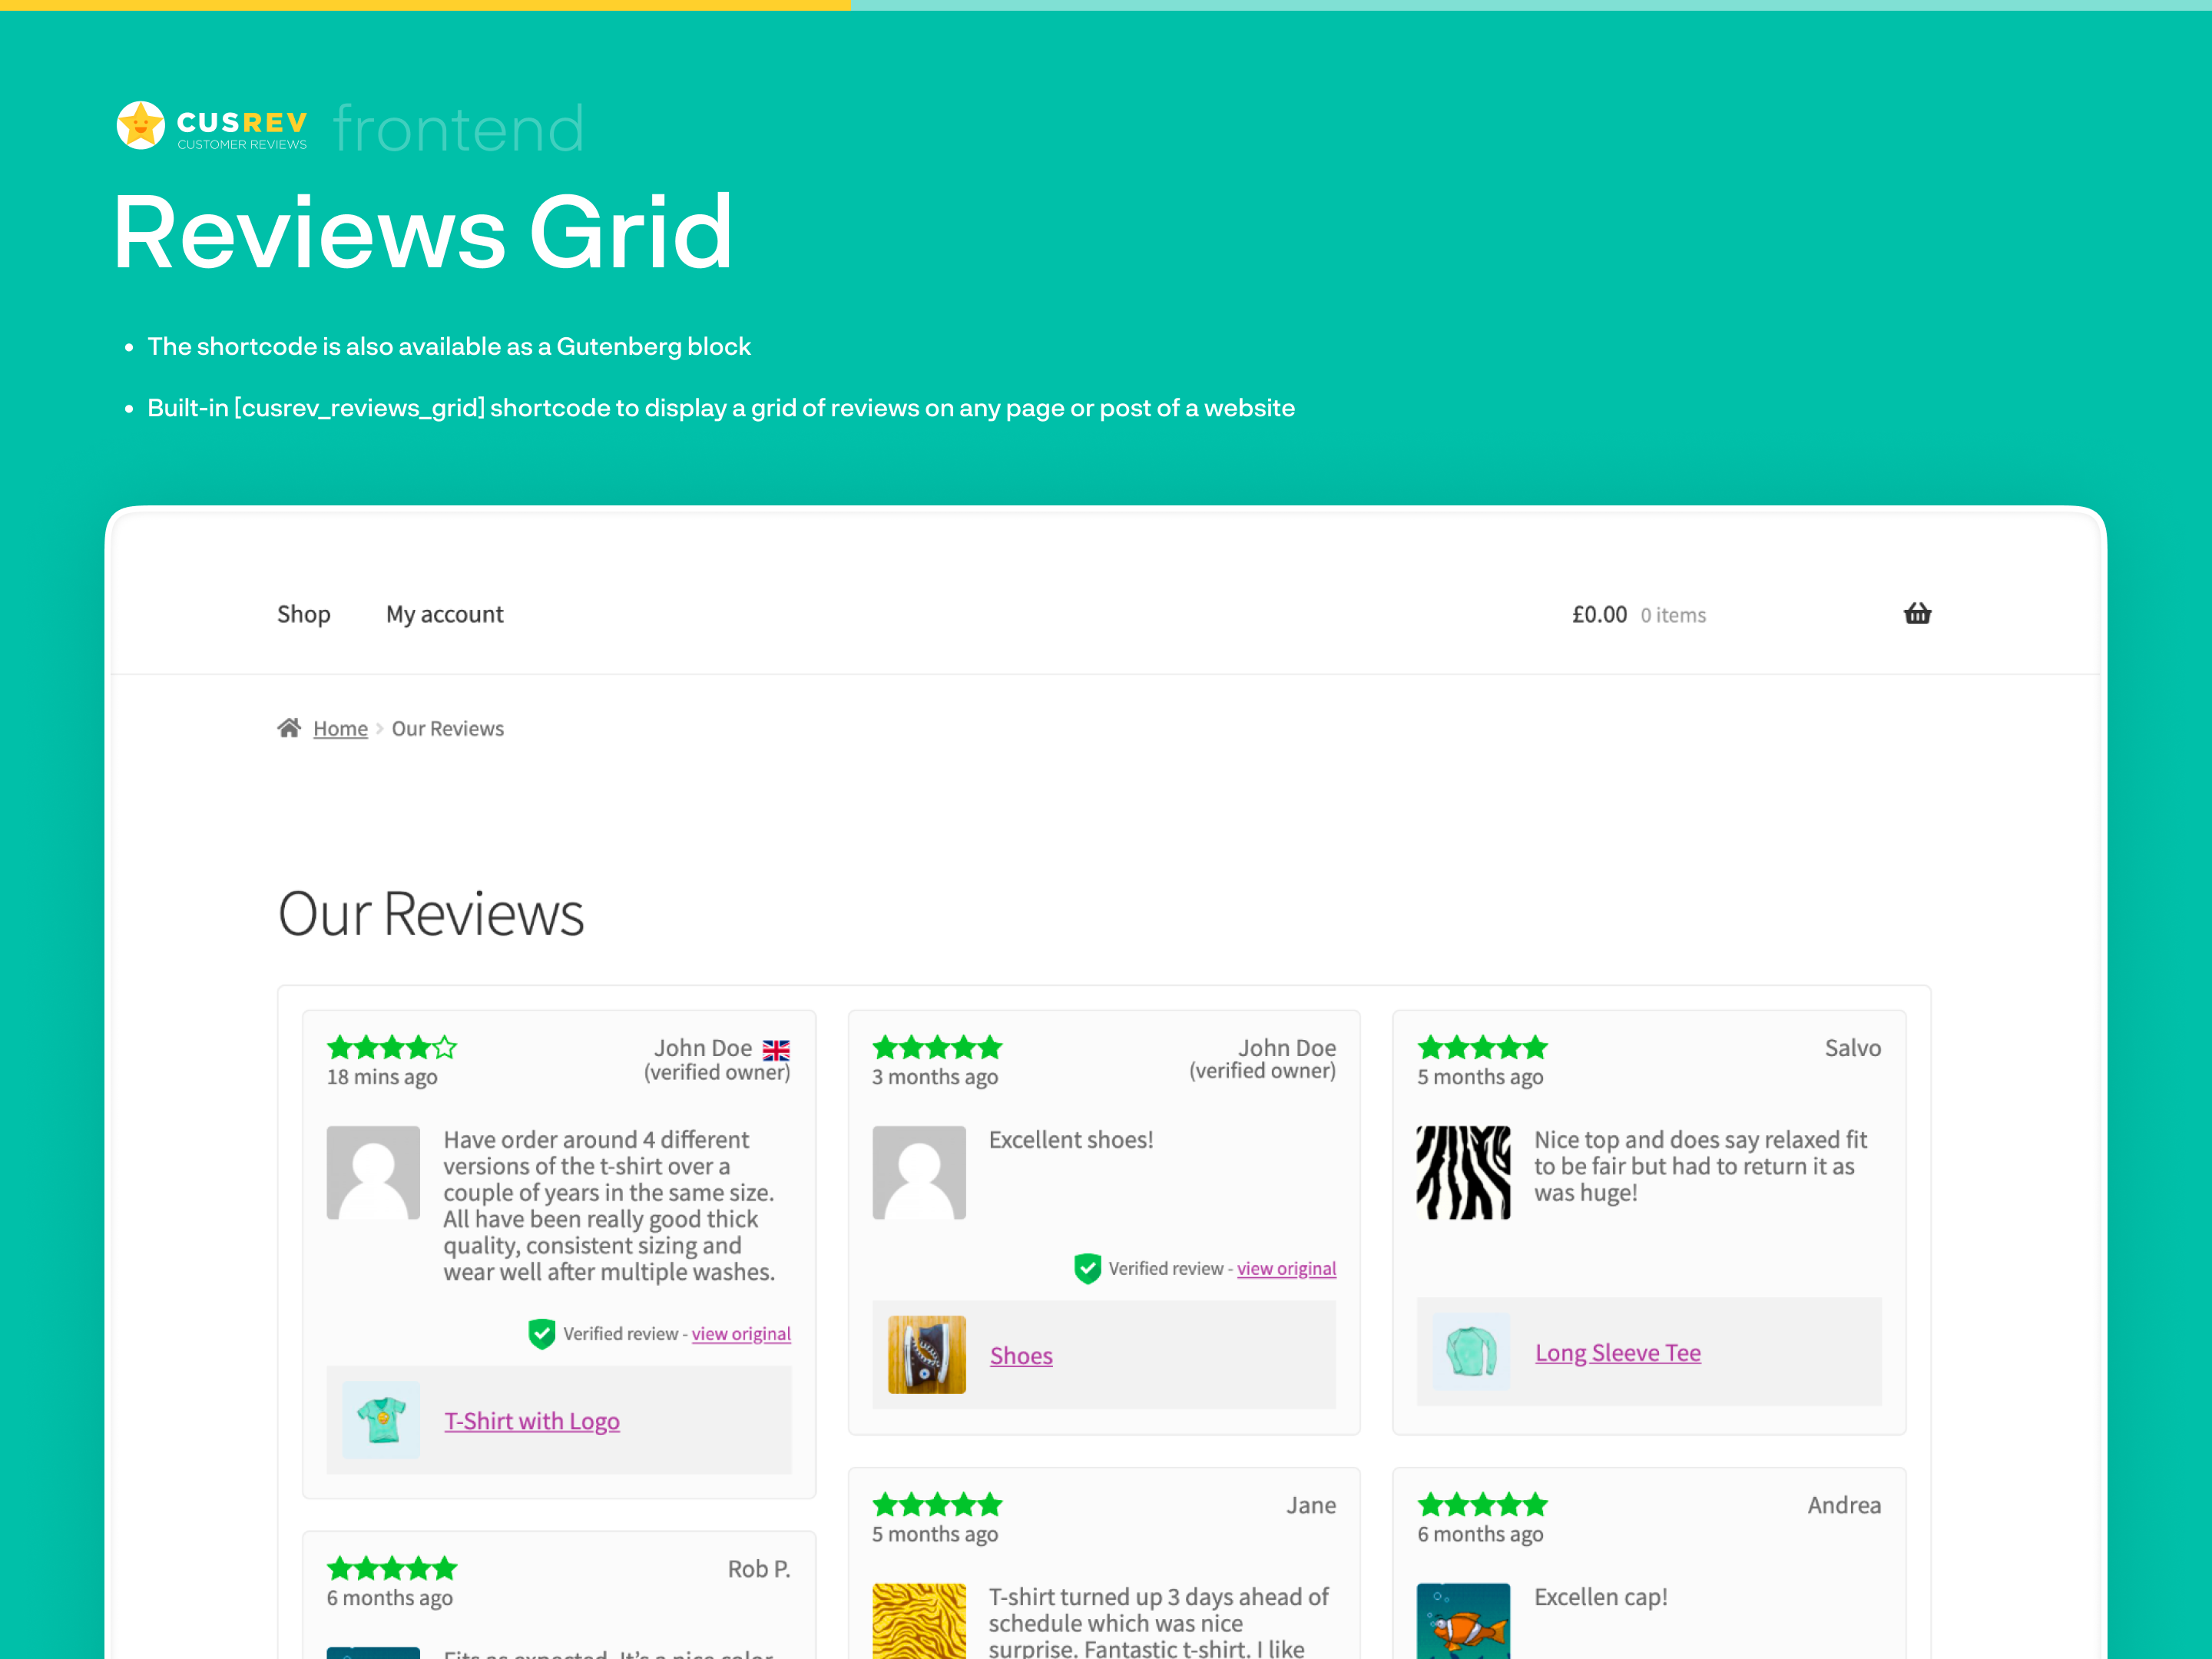 A button to attach pictures to reviews